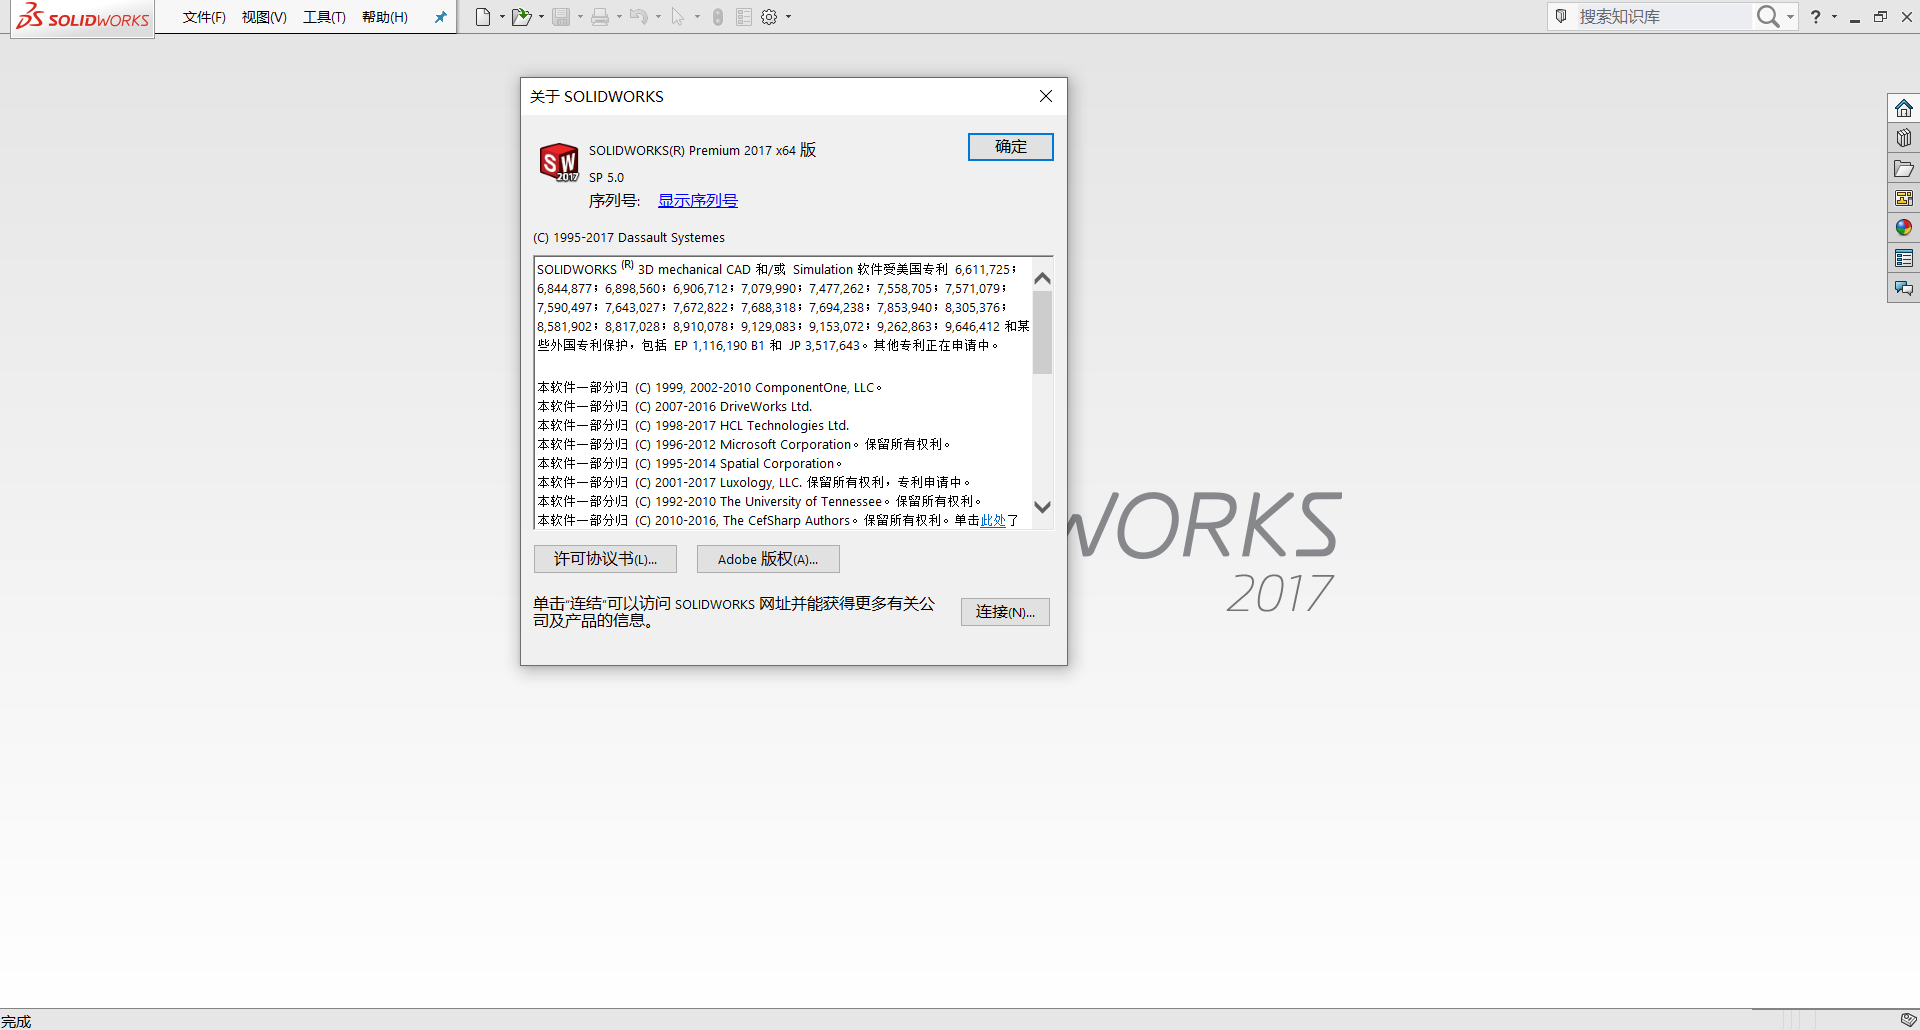 【3D数字工业】SolidWorks 2010 SP 5.0-2020 SP 0各年份破解版本合集【种子】